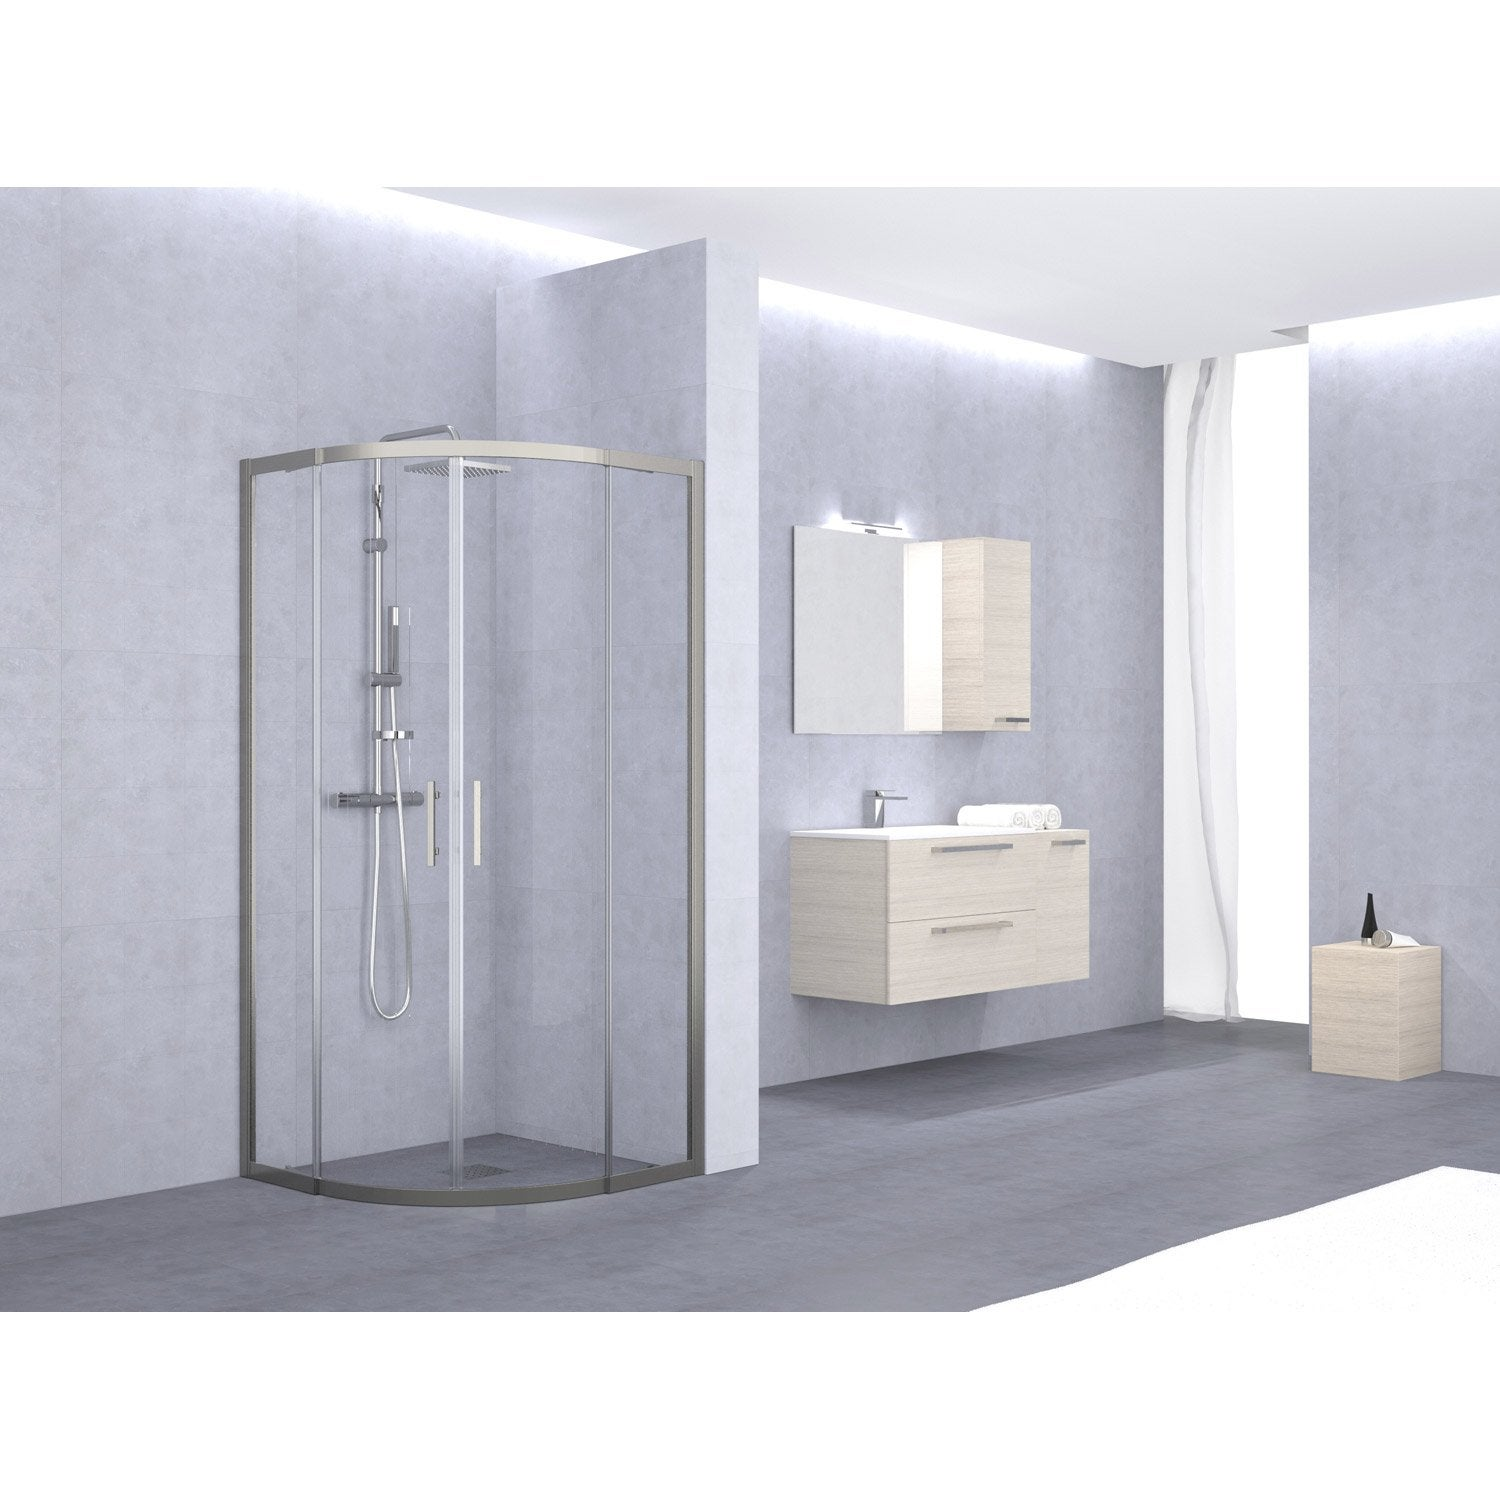 porte de douche coulissante angle 1 4 de cercle x l. Black Bedroom Furniture Sets. Home Design Ideas